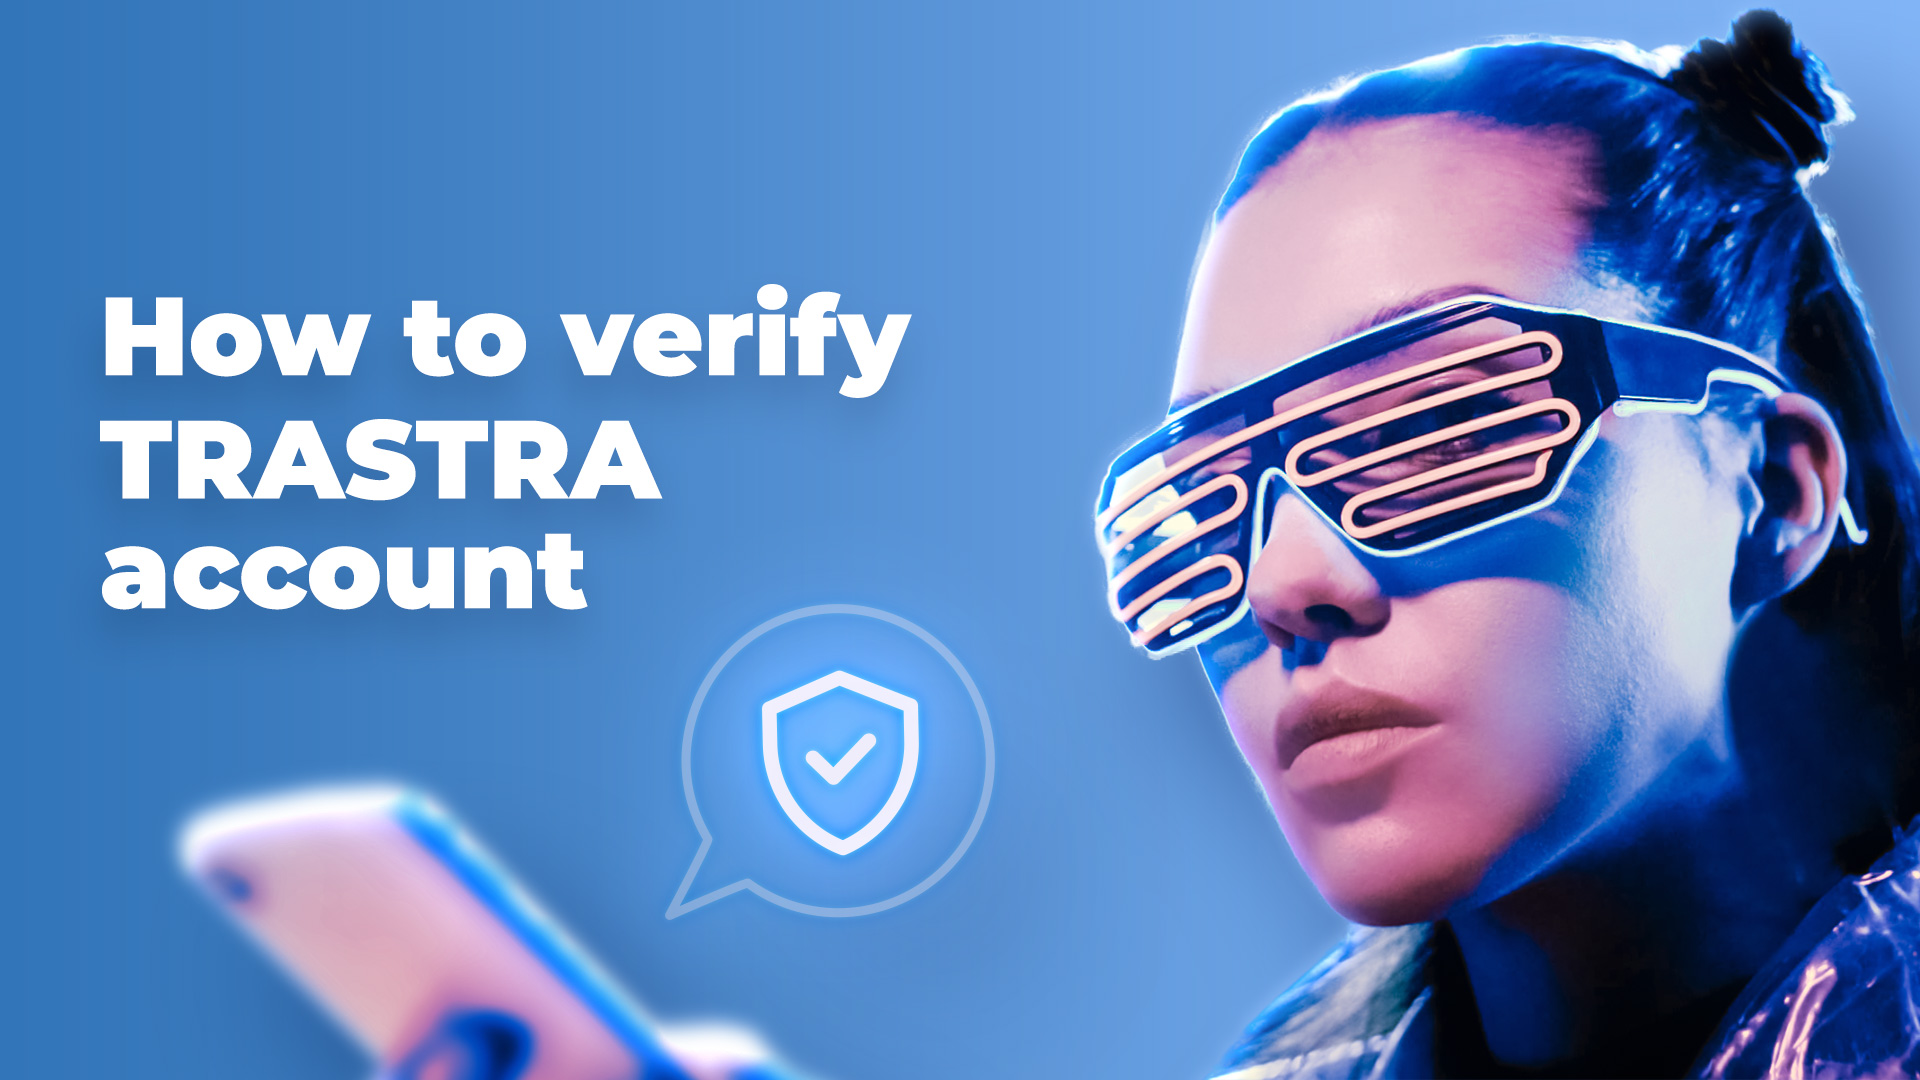 How to verify TRASTRA account